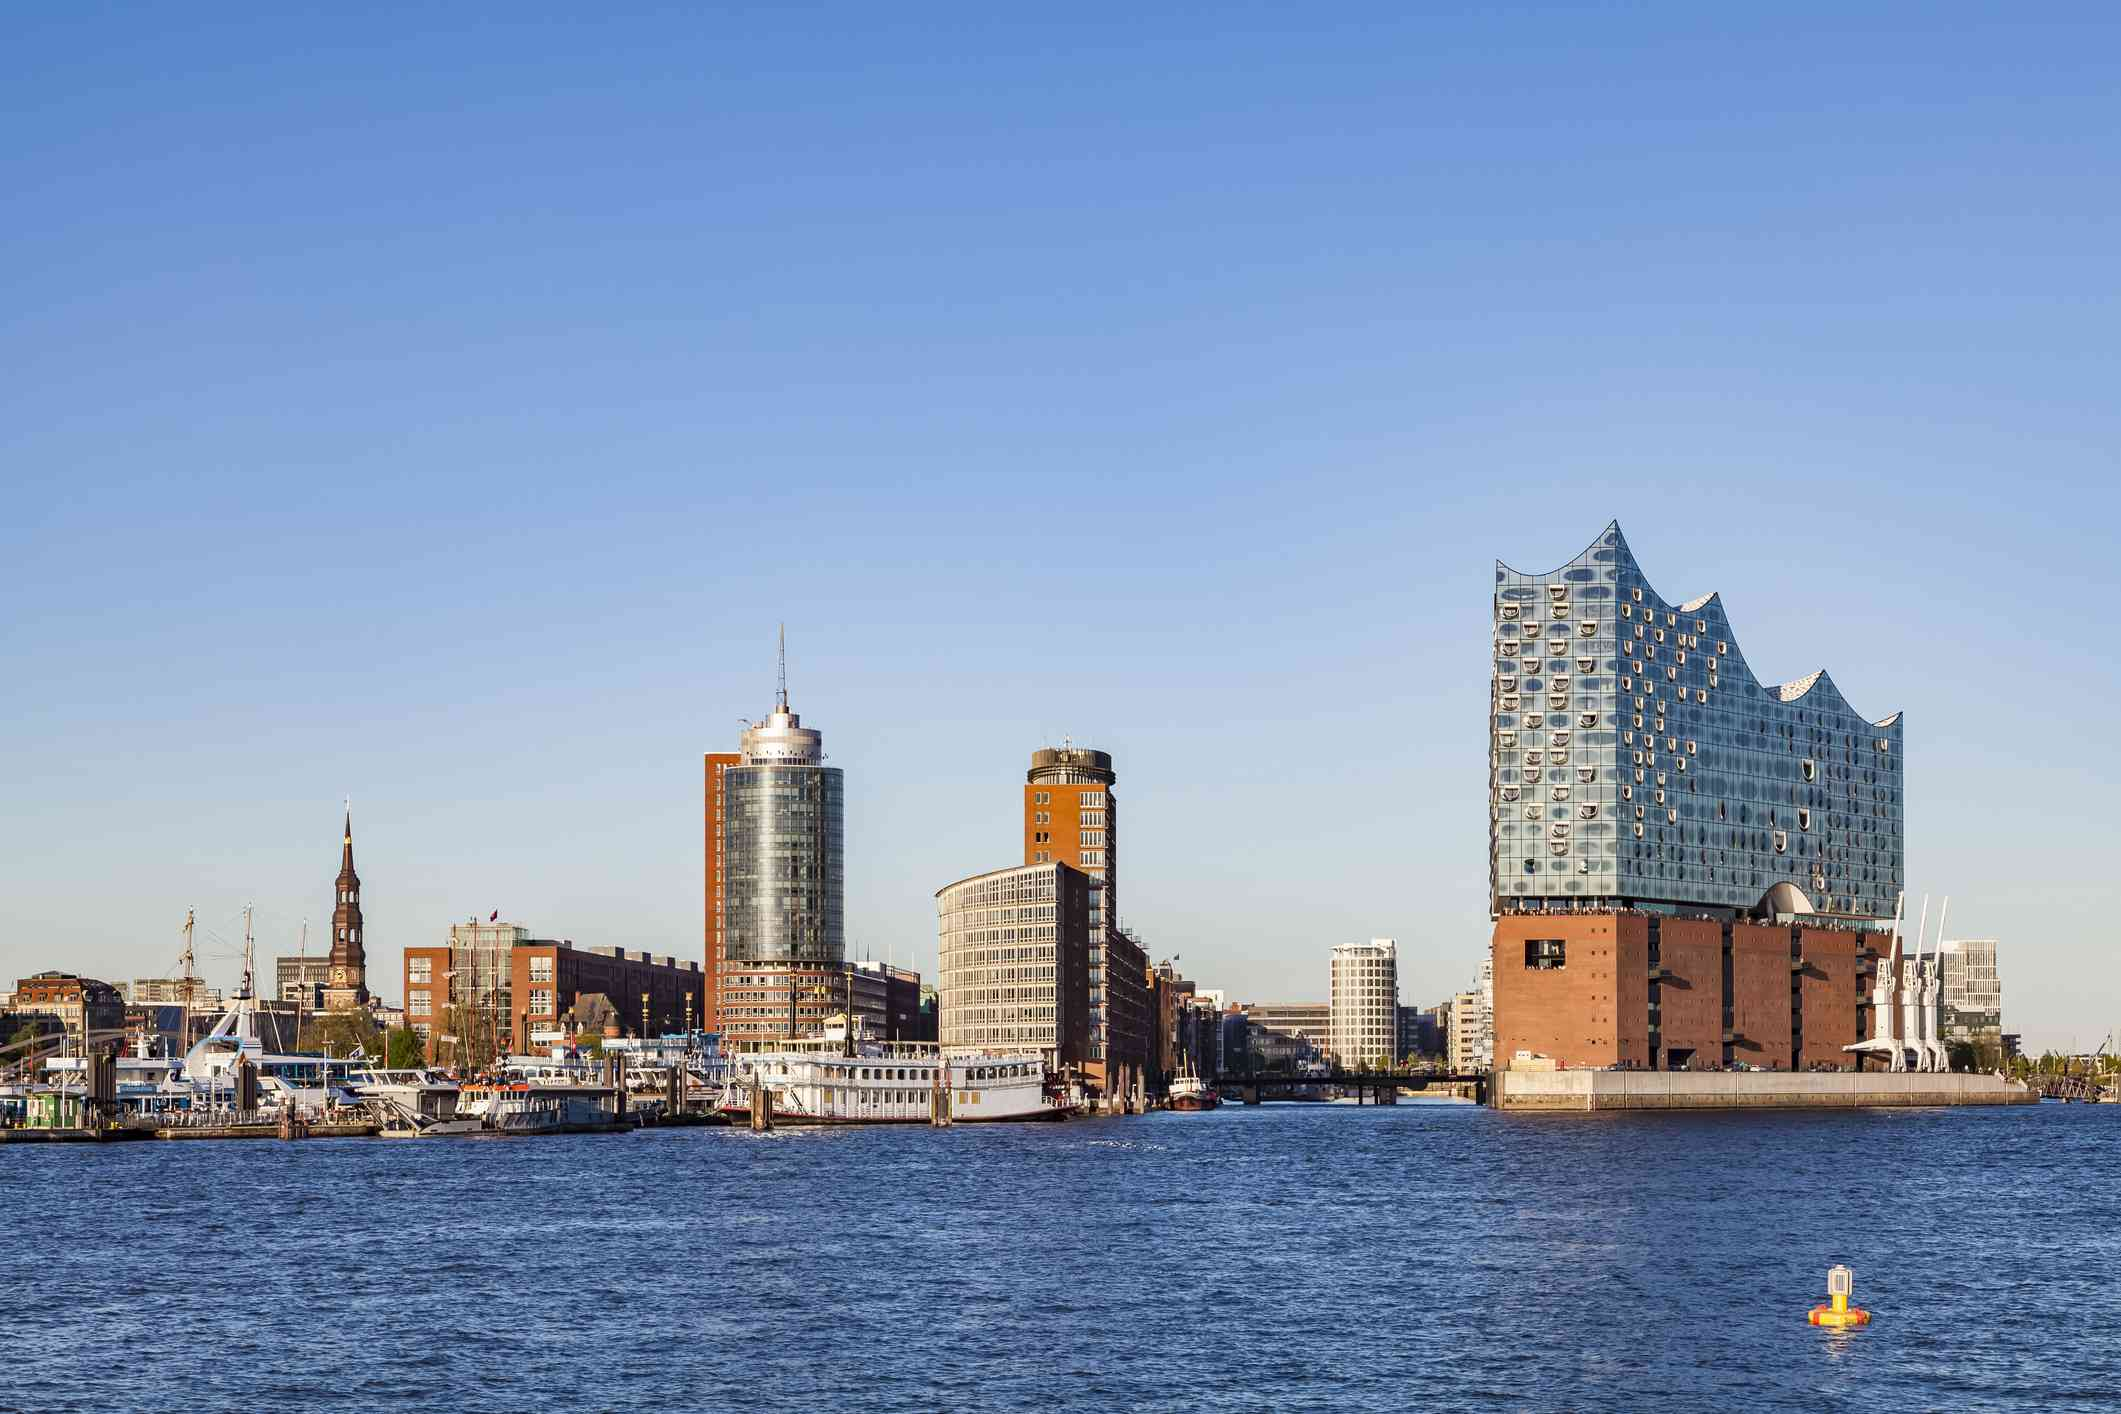 view across the blue water of the harbor of elbphilharmonie Hamburg on the right, a multi-use building completed in 2017, with several brick floors at the lower level and a modern glass tower above, next to new and old buildings in Hamburg's harbor,